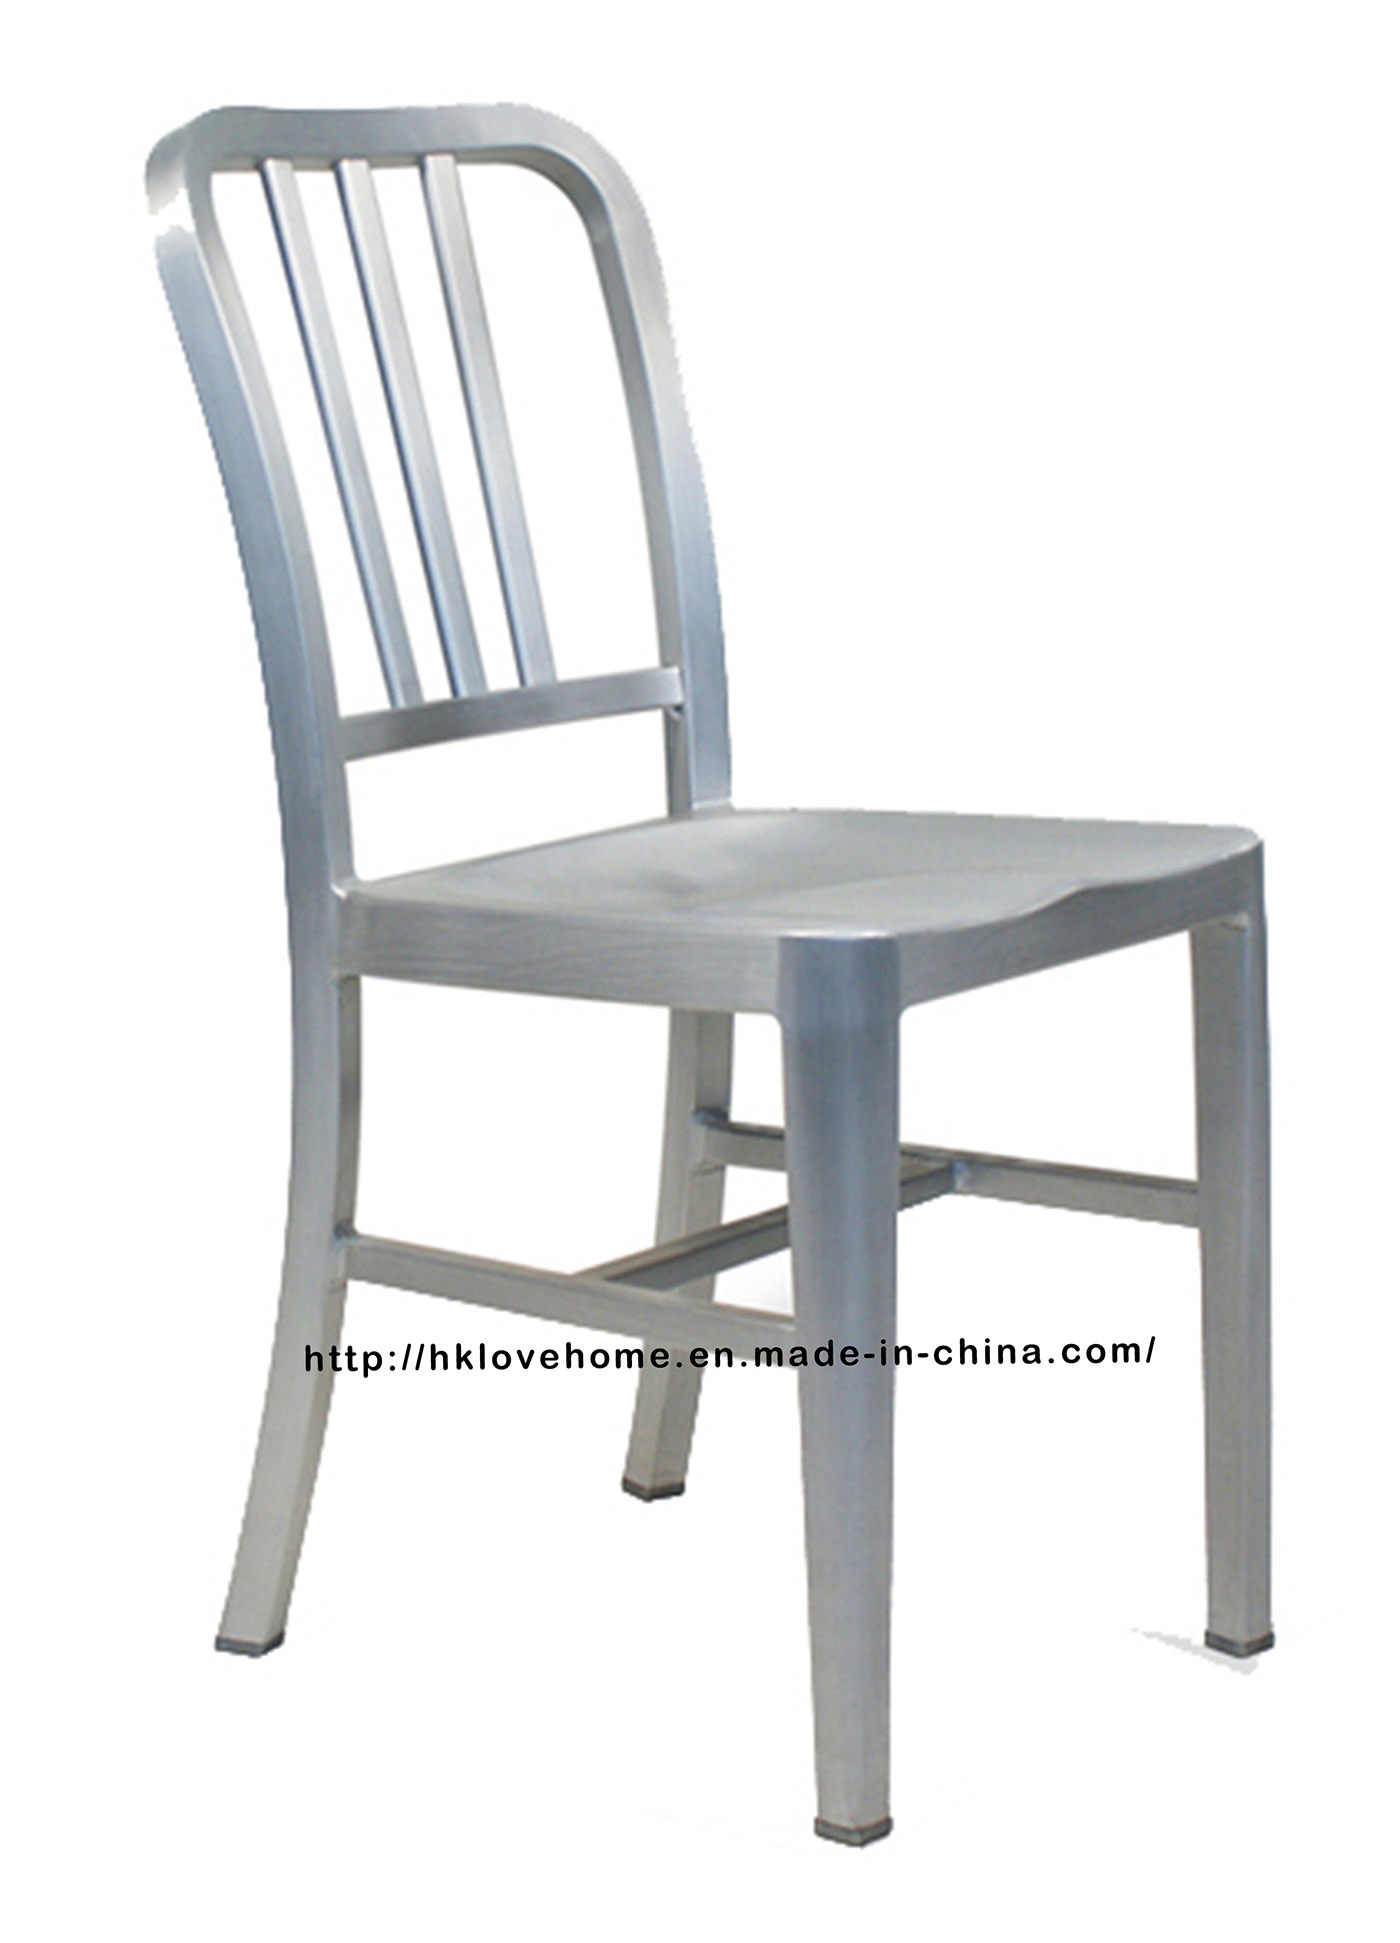 Aluminum Chair HONG KONG LOVE HOME PRODUCTS LTD page 1